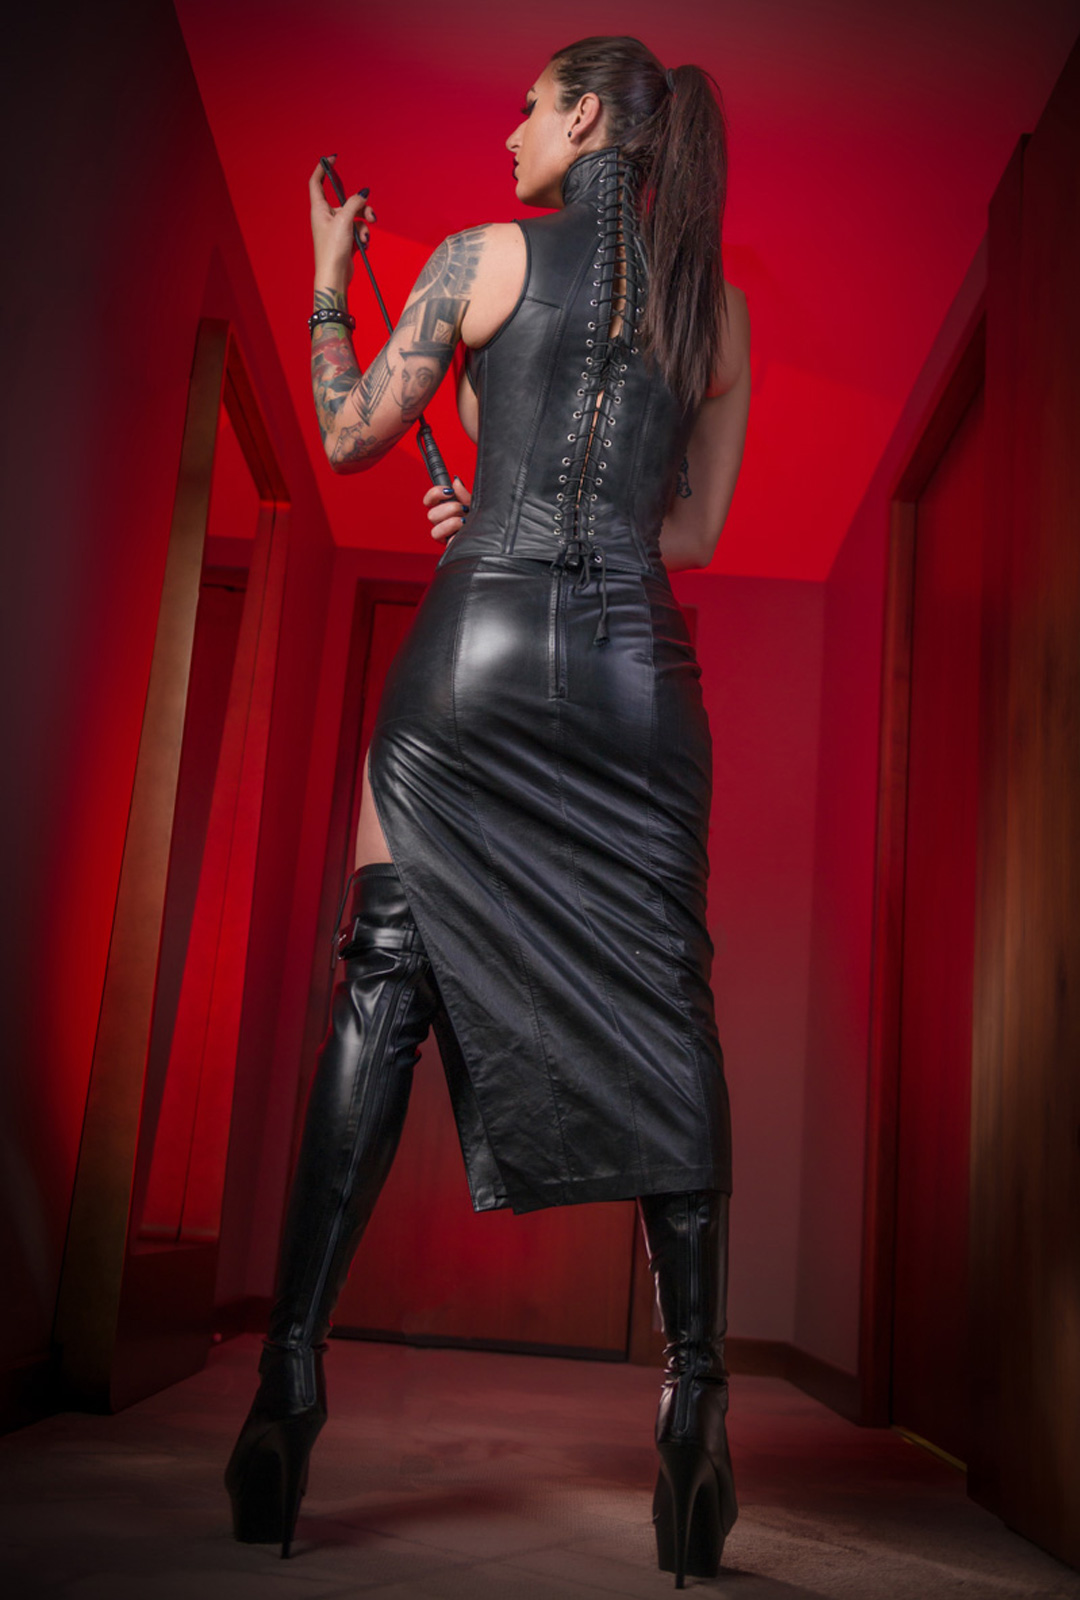 Mistress Damazonia